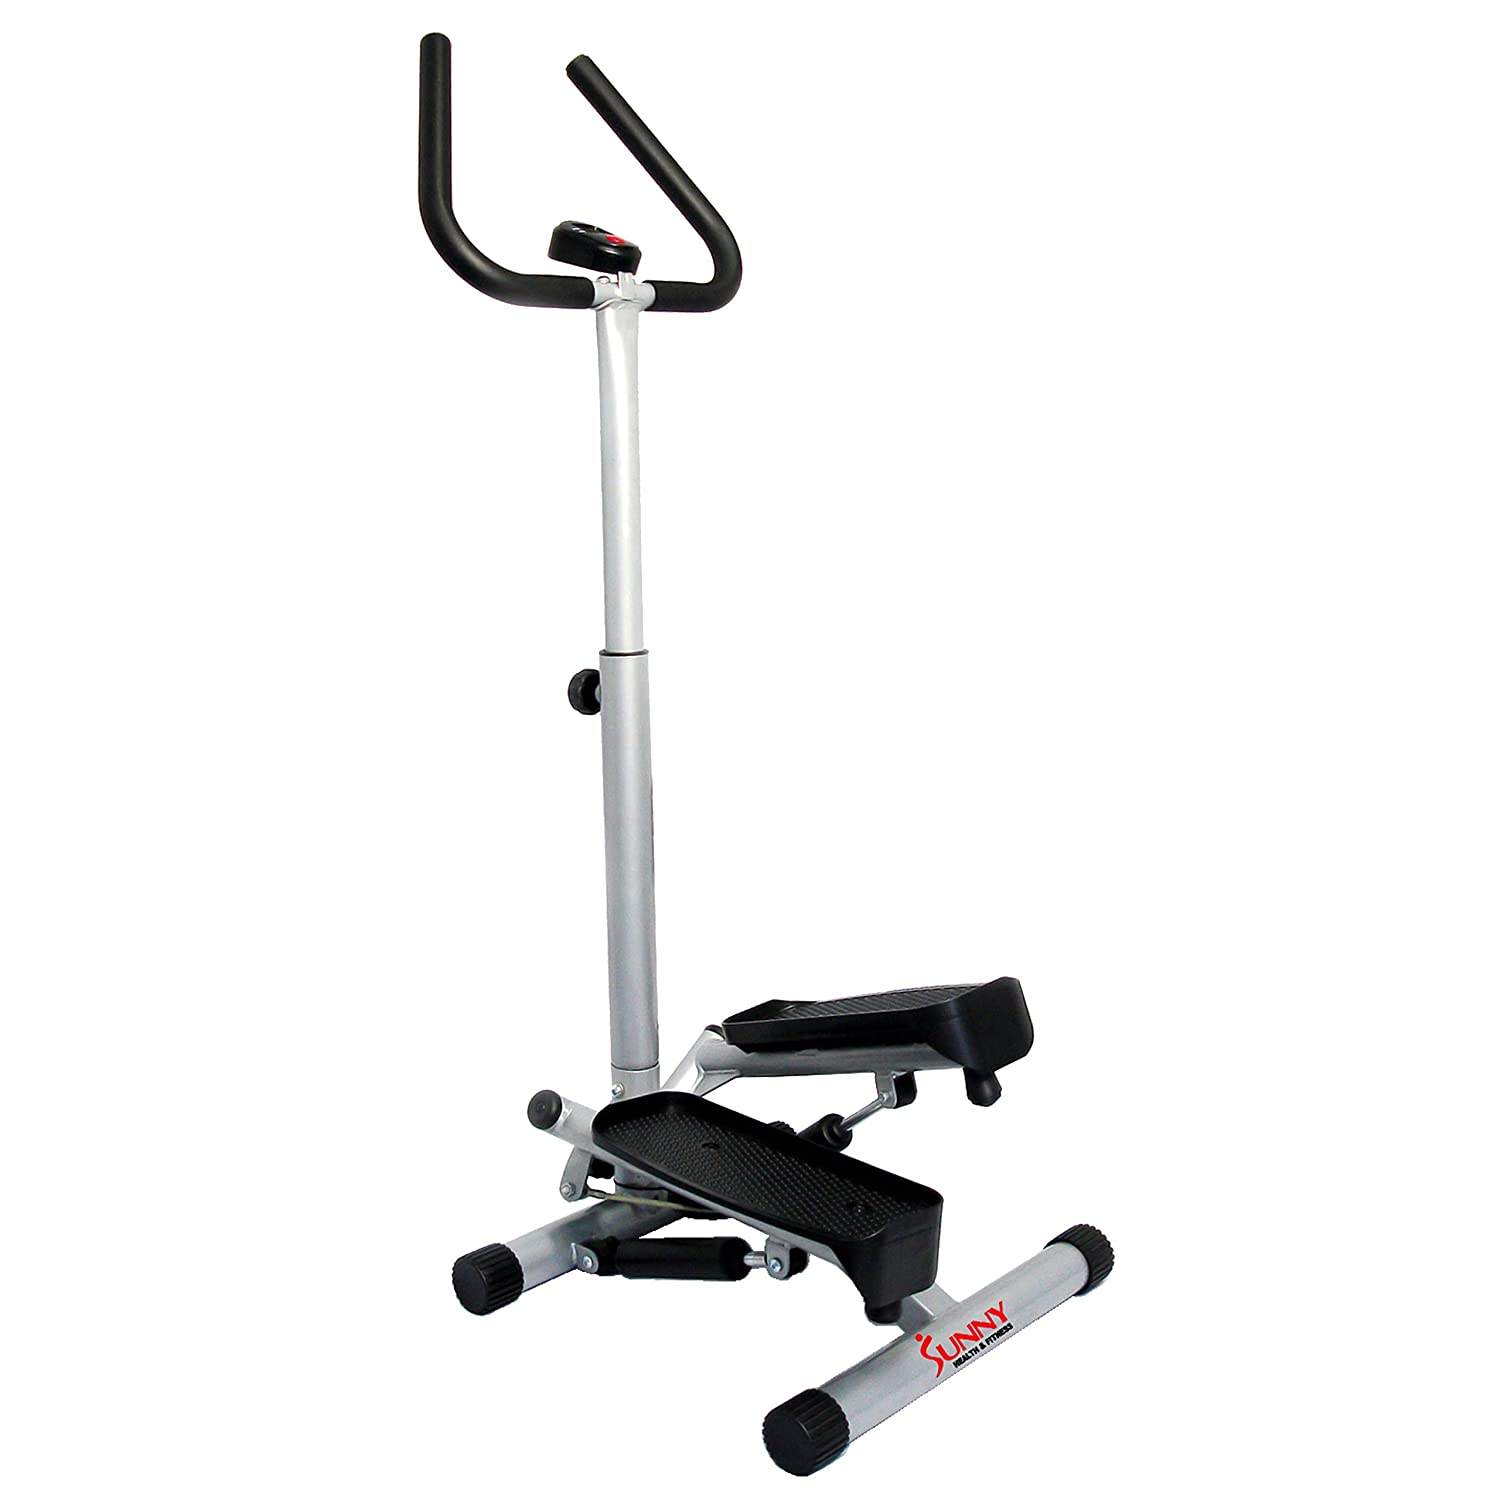 Sunny Health Fitness NO. 059 Twist Stepper Step Machine w Handle Bar and LCD Monitor Renewed